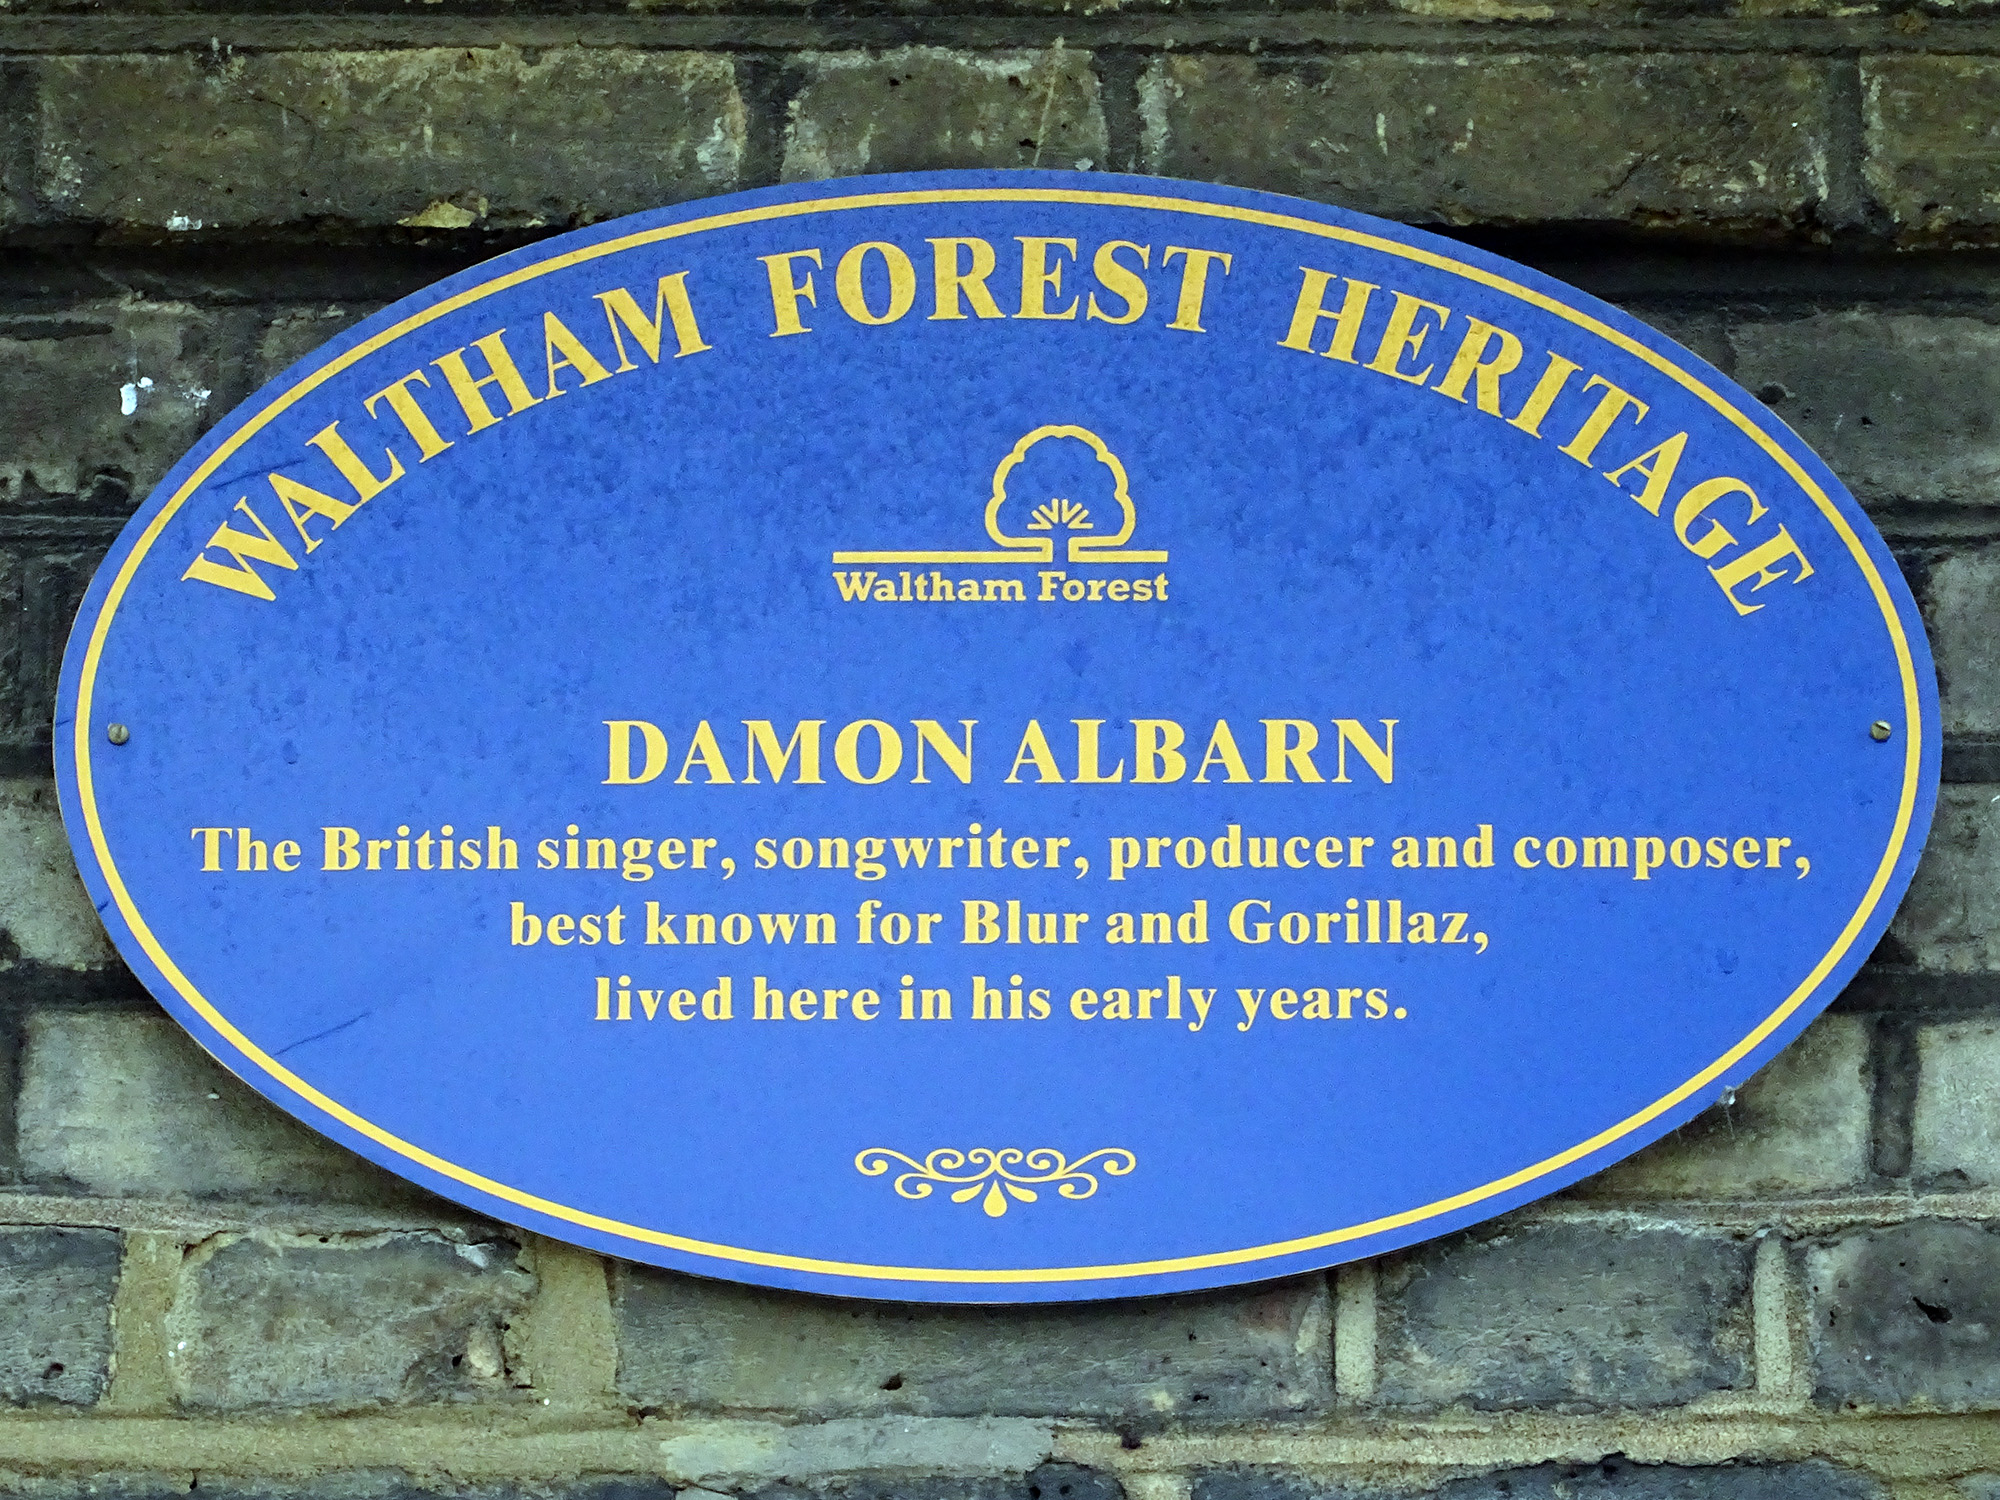 File:Damon Albarn (Waltham Forest Heritage).jpg - Wikimedia Commons